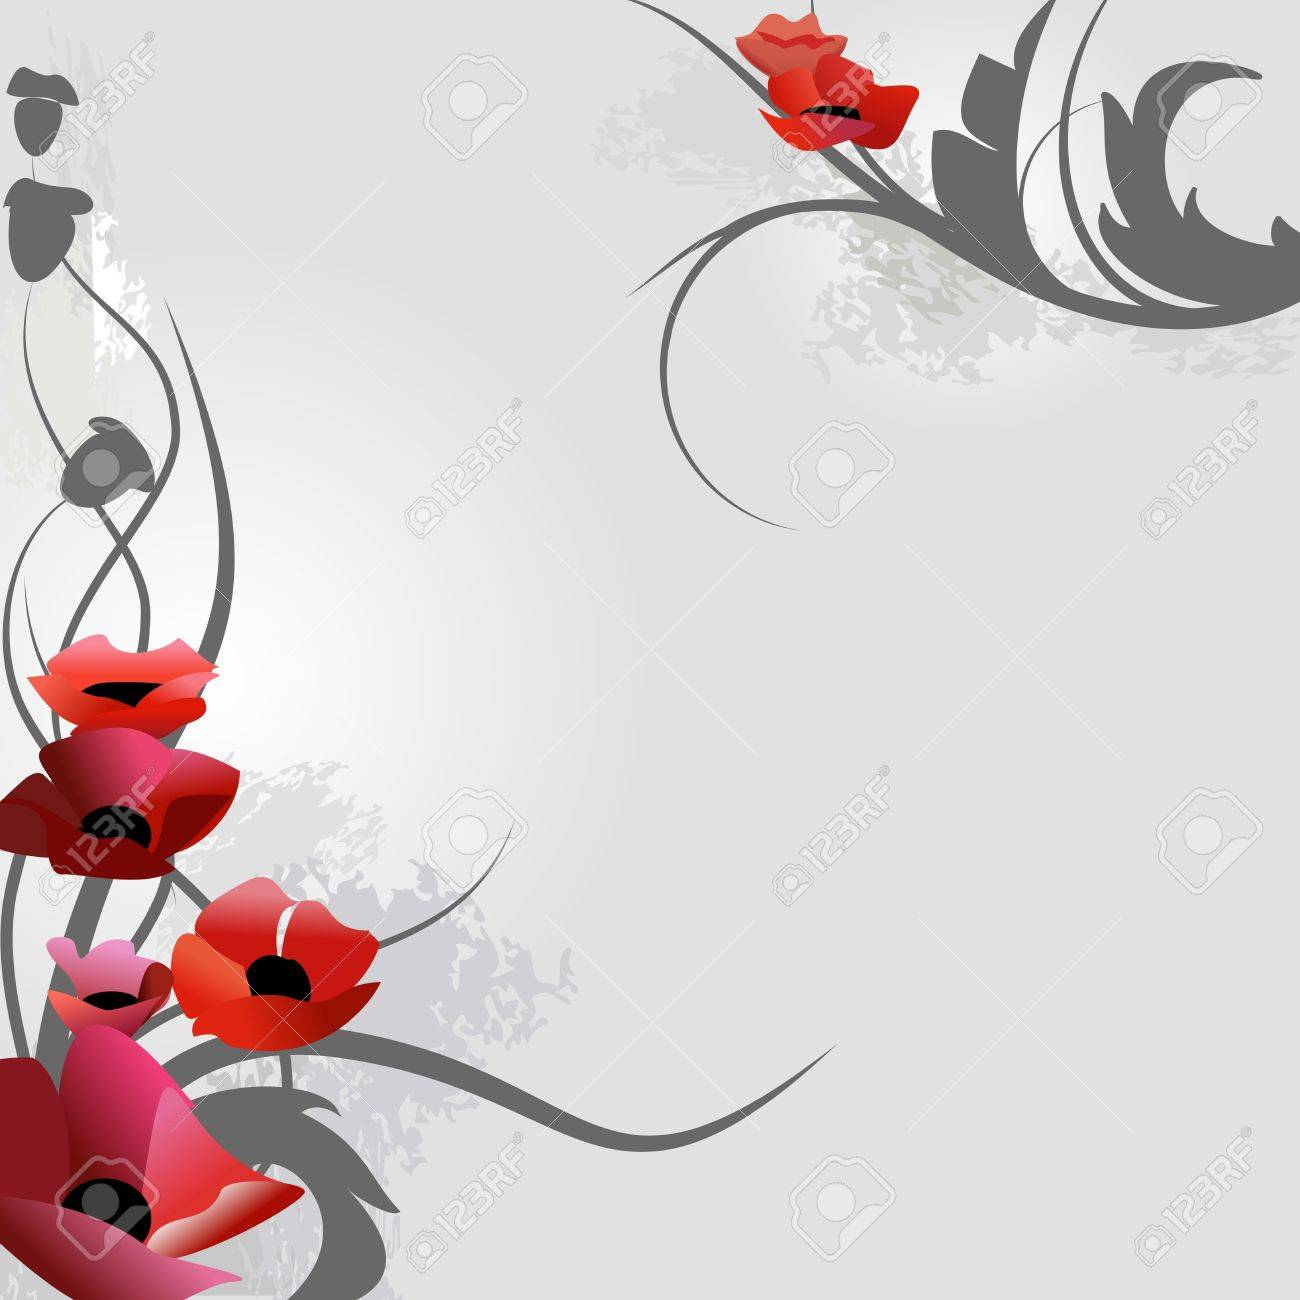 Poppies over grey illustration Stock Vector - 5624322